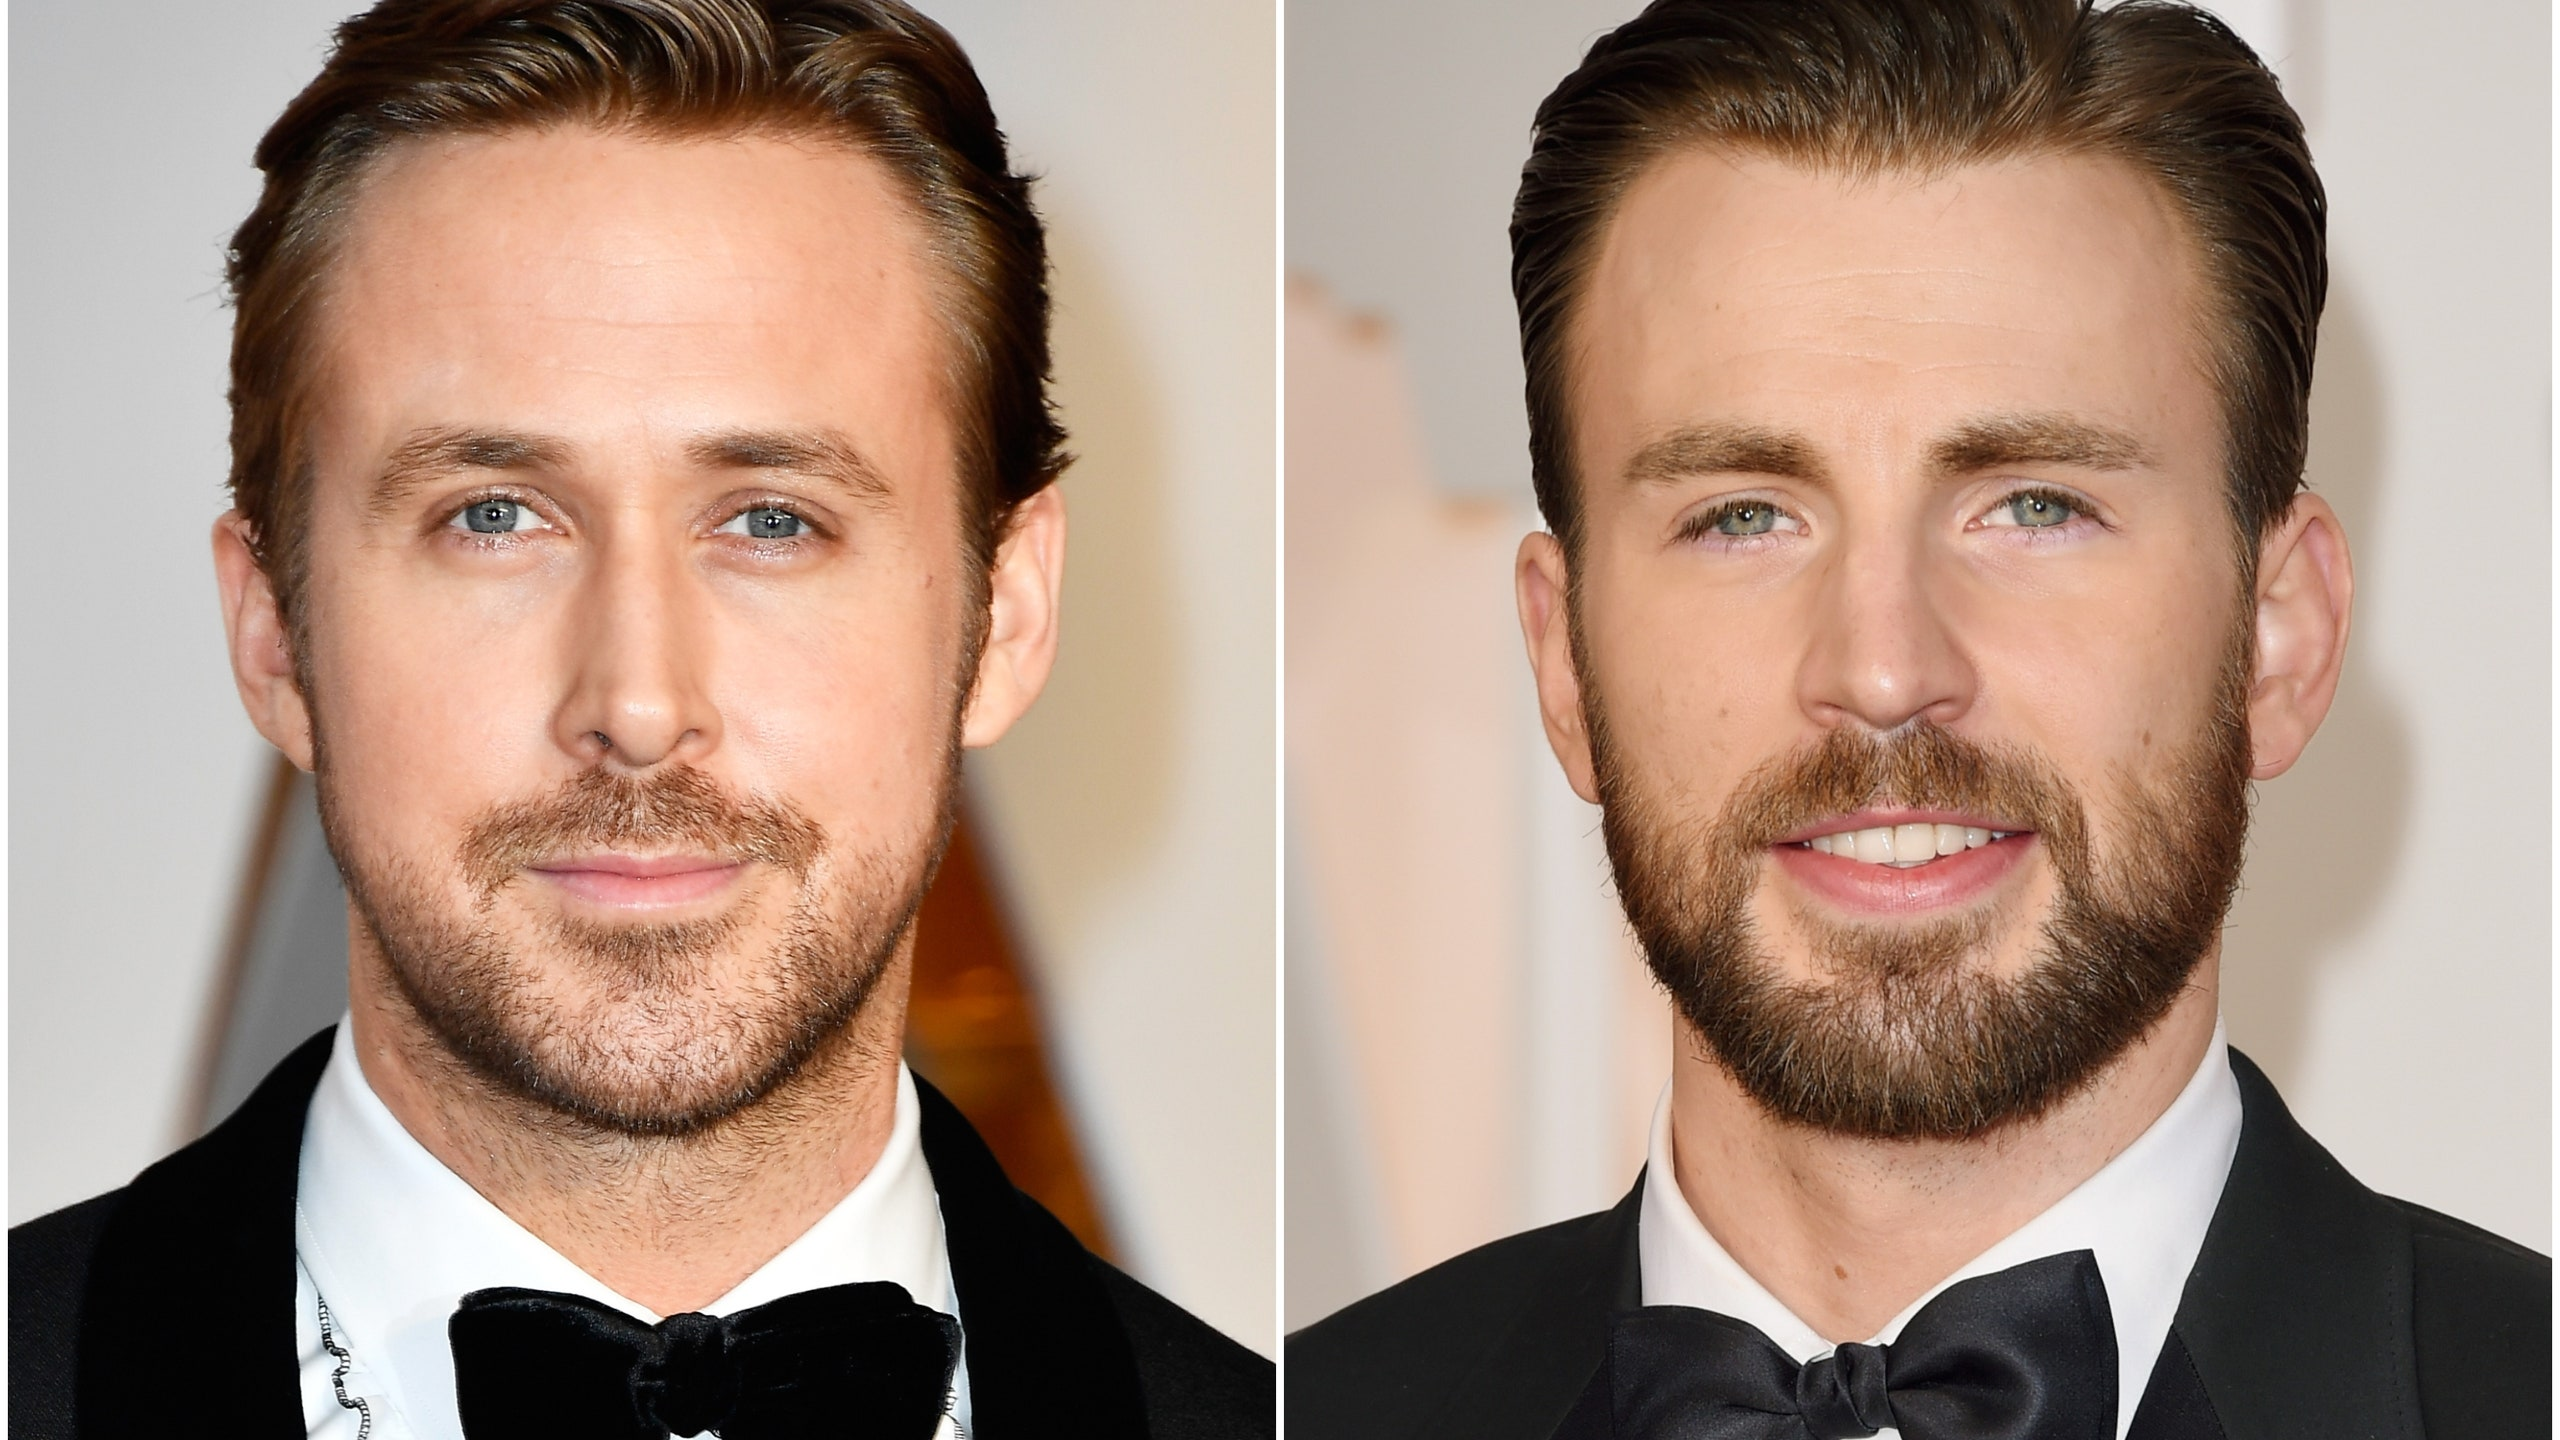 Chris Evans, Ryan Gosling to Star in $200 Million Spy Thriller for Netflix